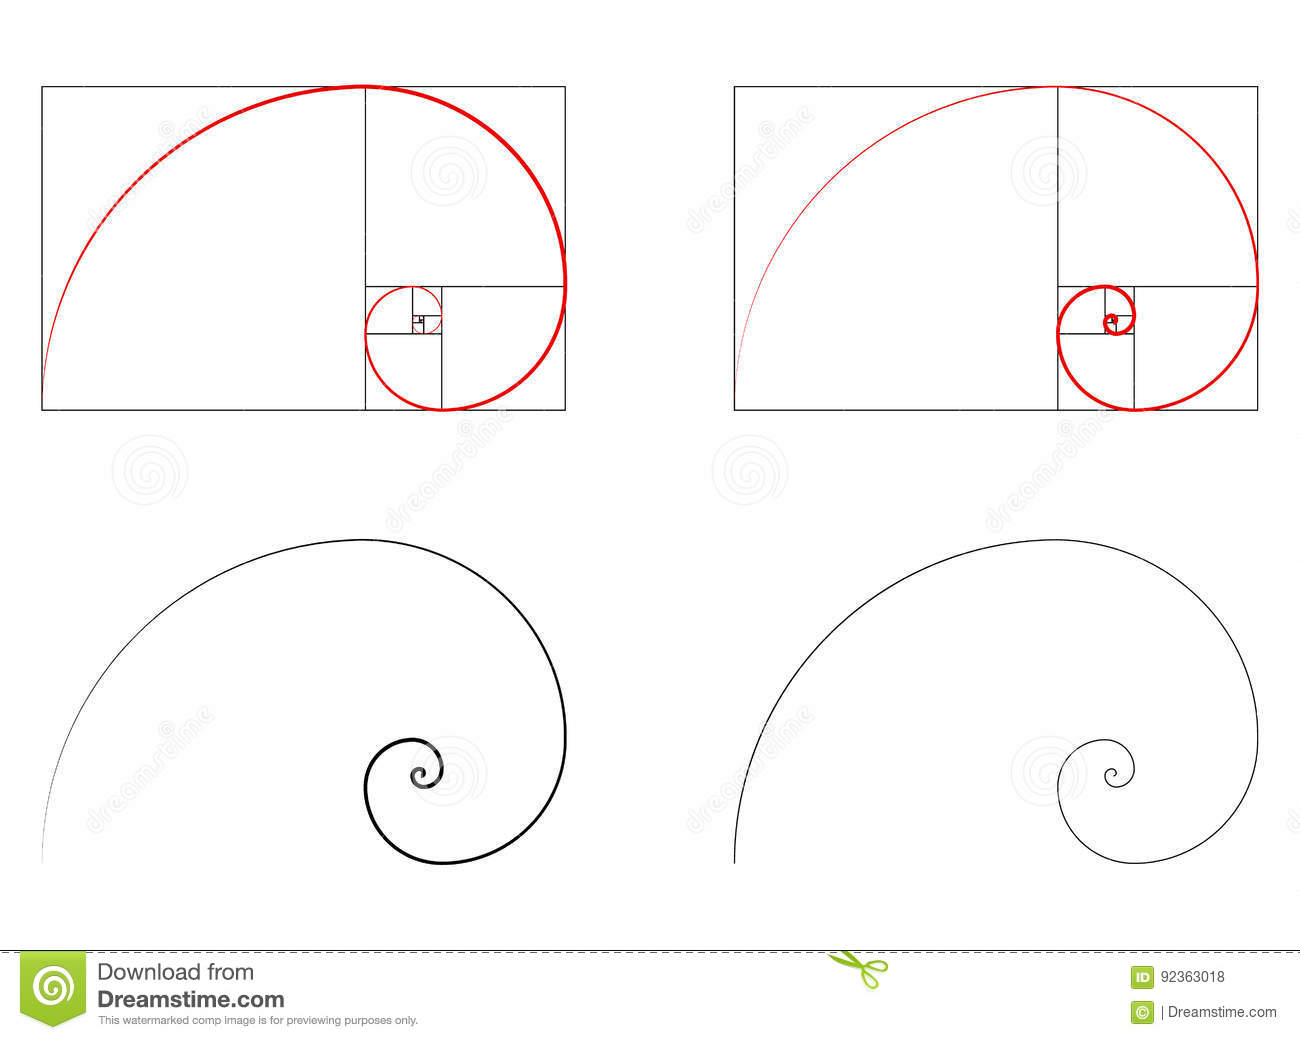 Golden ratio spiral section set